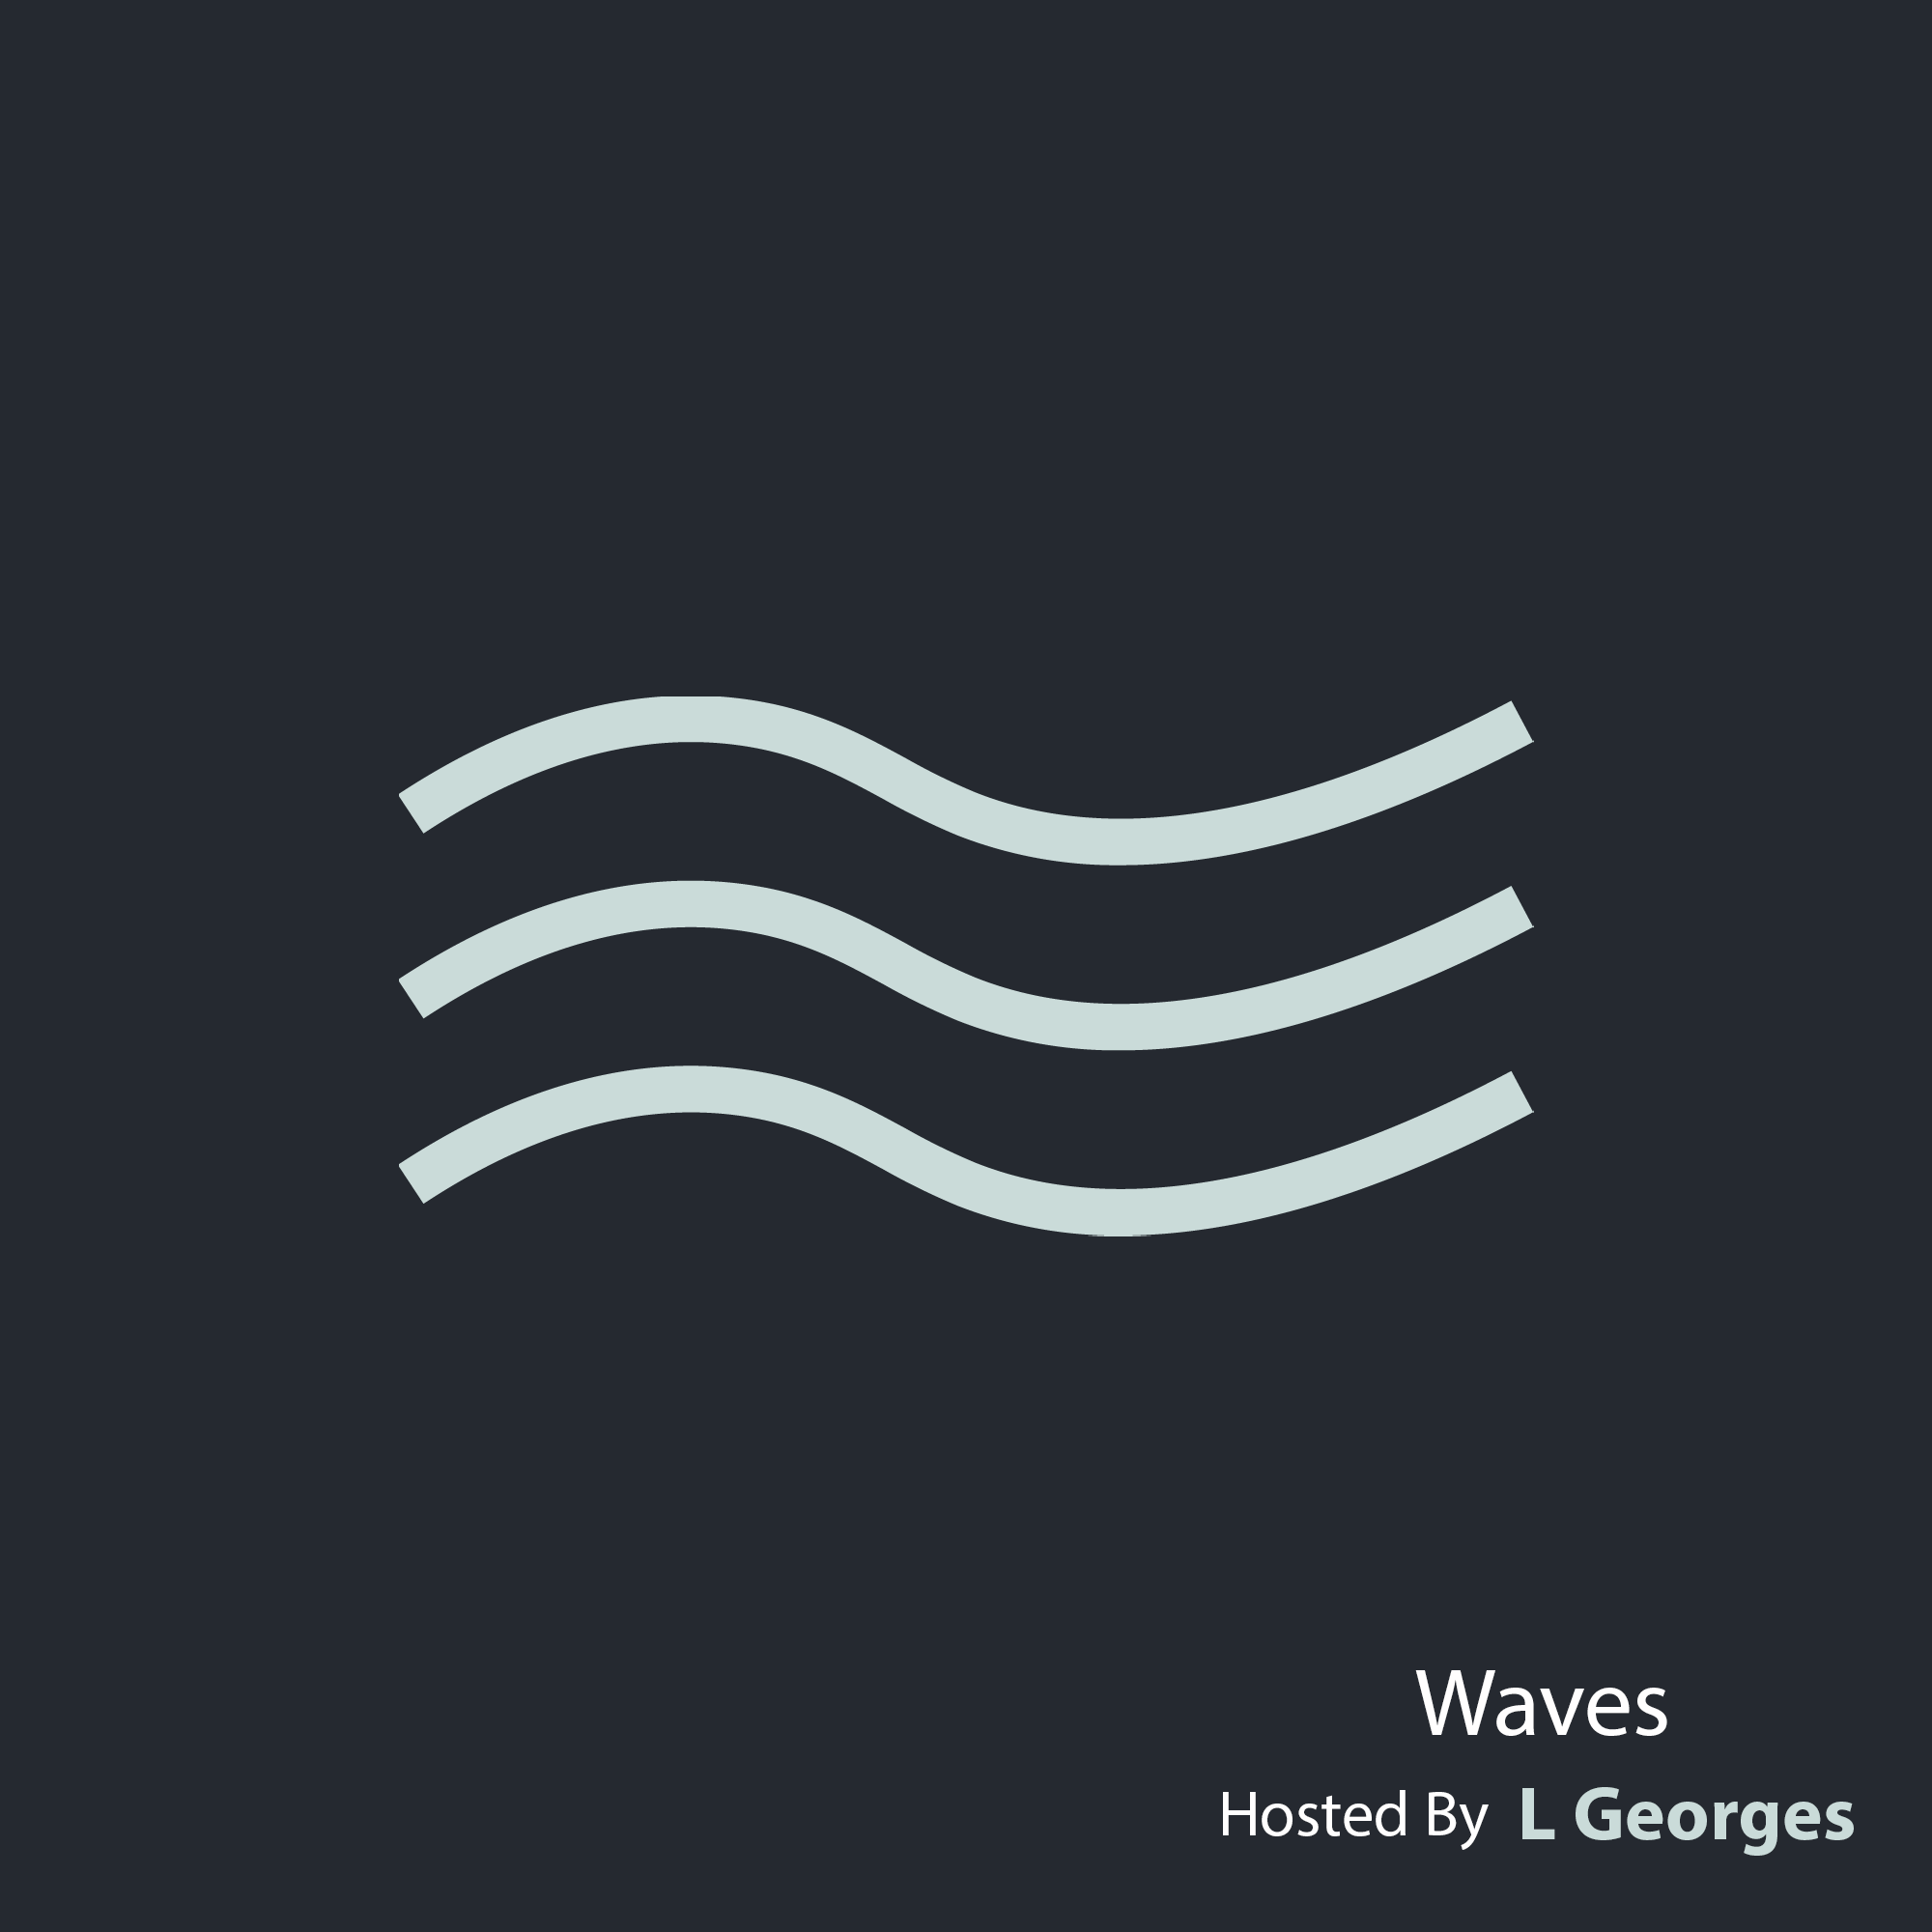 Waves :: L Georges - Waves - Act 004 [Christmas Edition] (aired on December 25th, 2020) banner logo